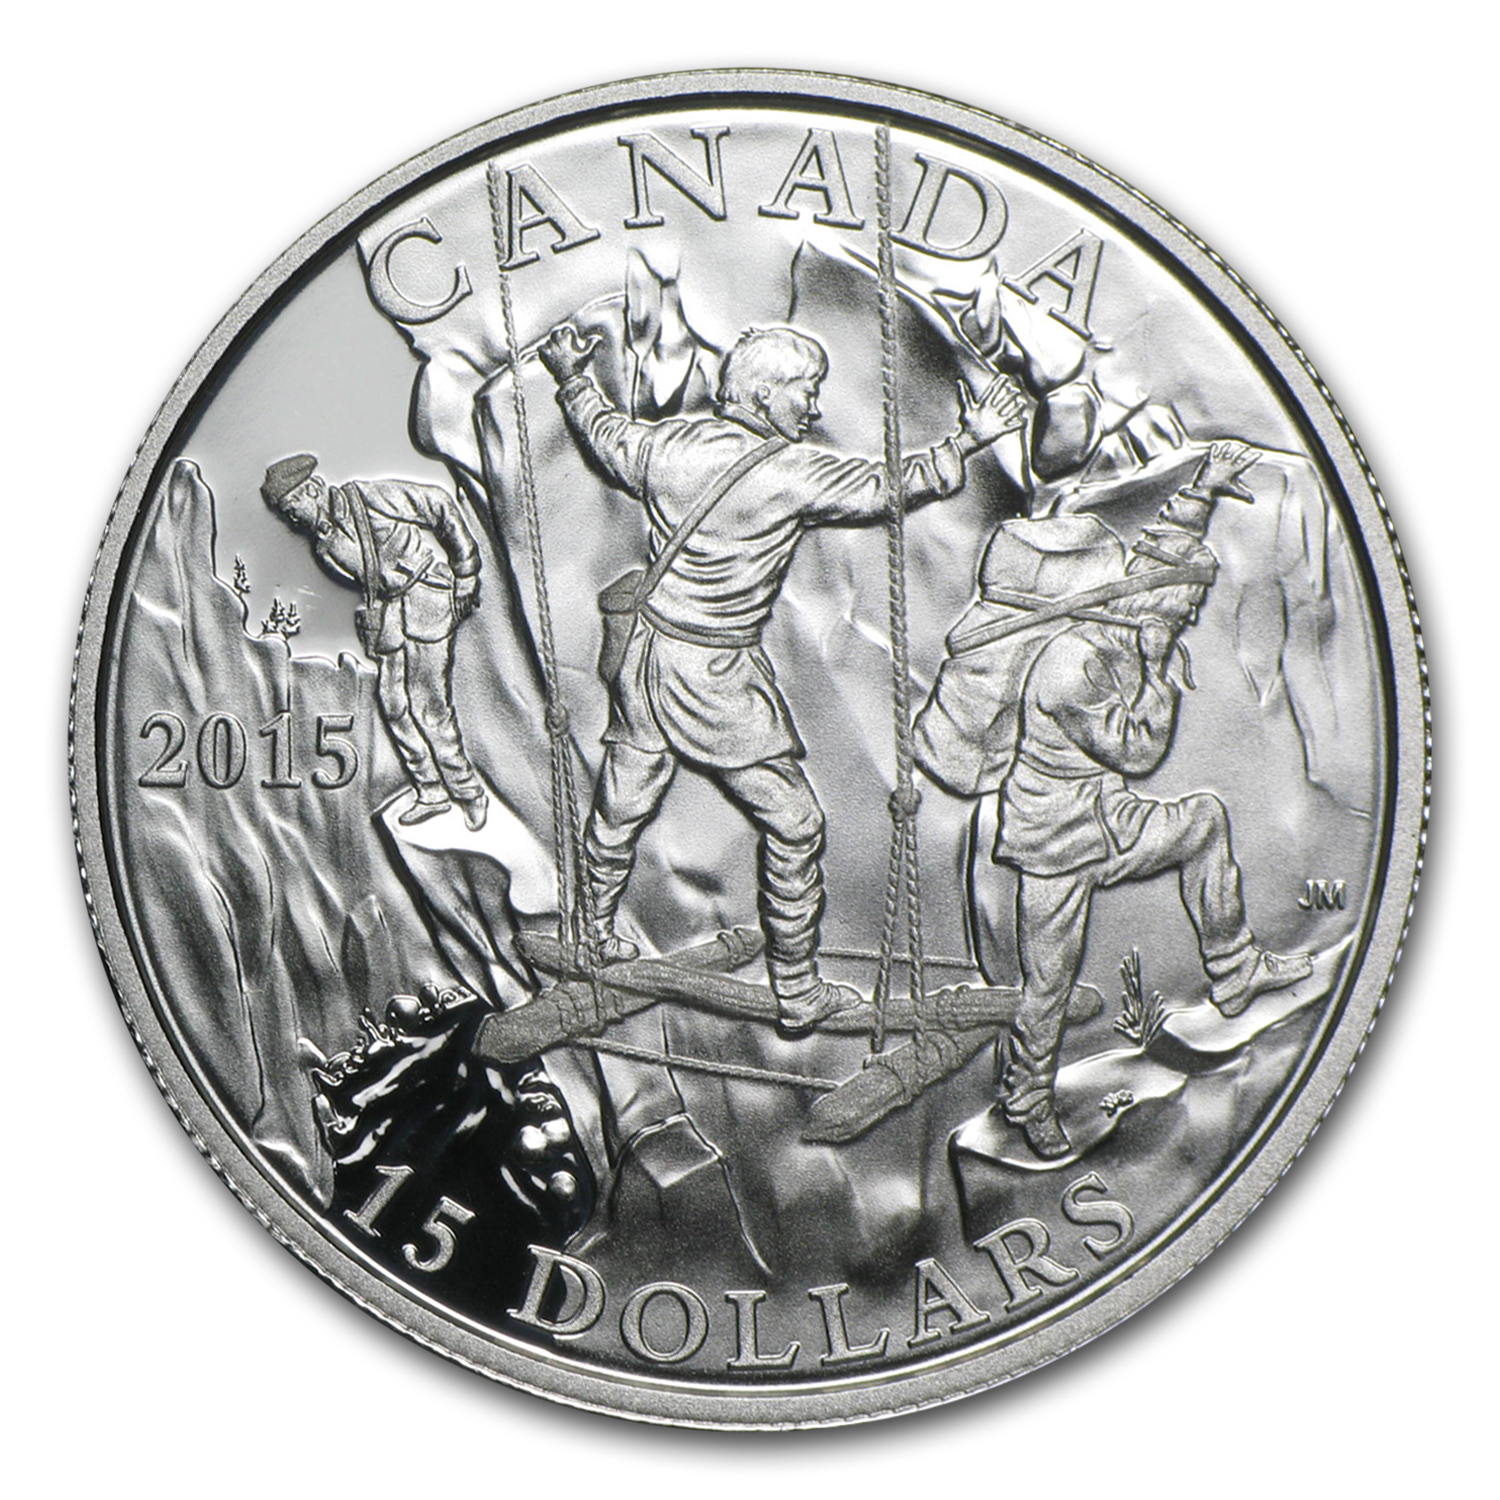 2015 Canada Silver Exploring Canada The Wild Rivers Exploration